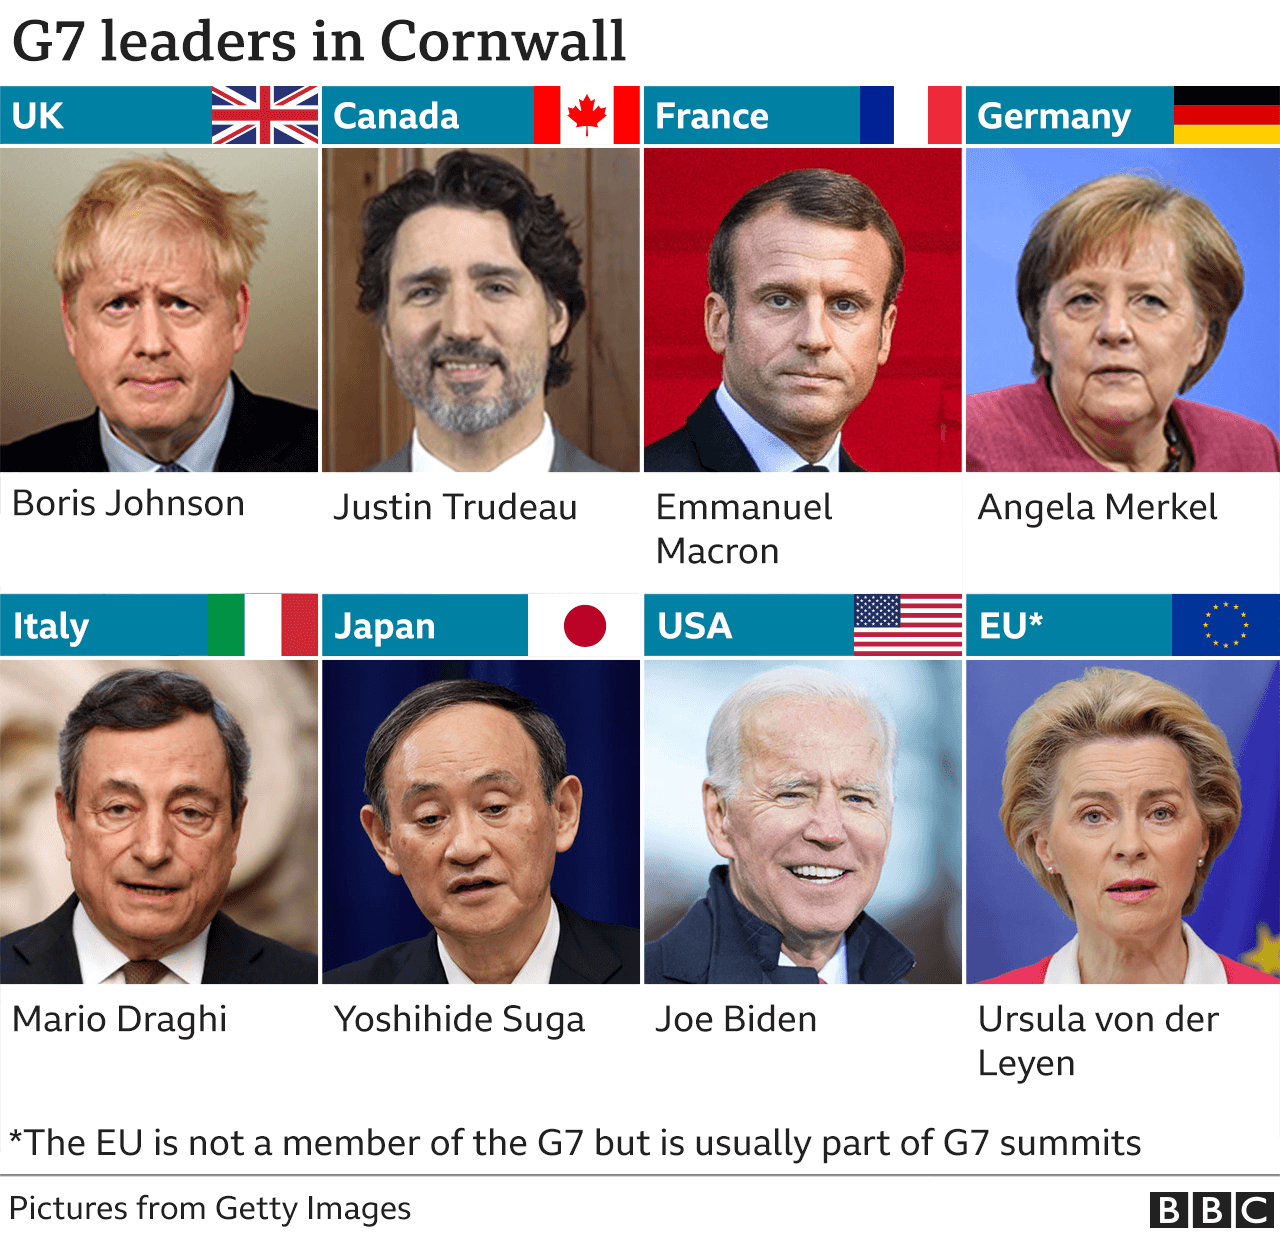 Graphic showing the faces of each leader